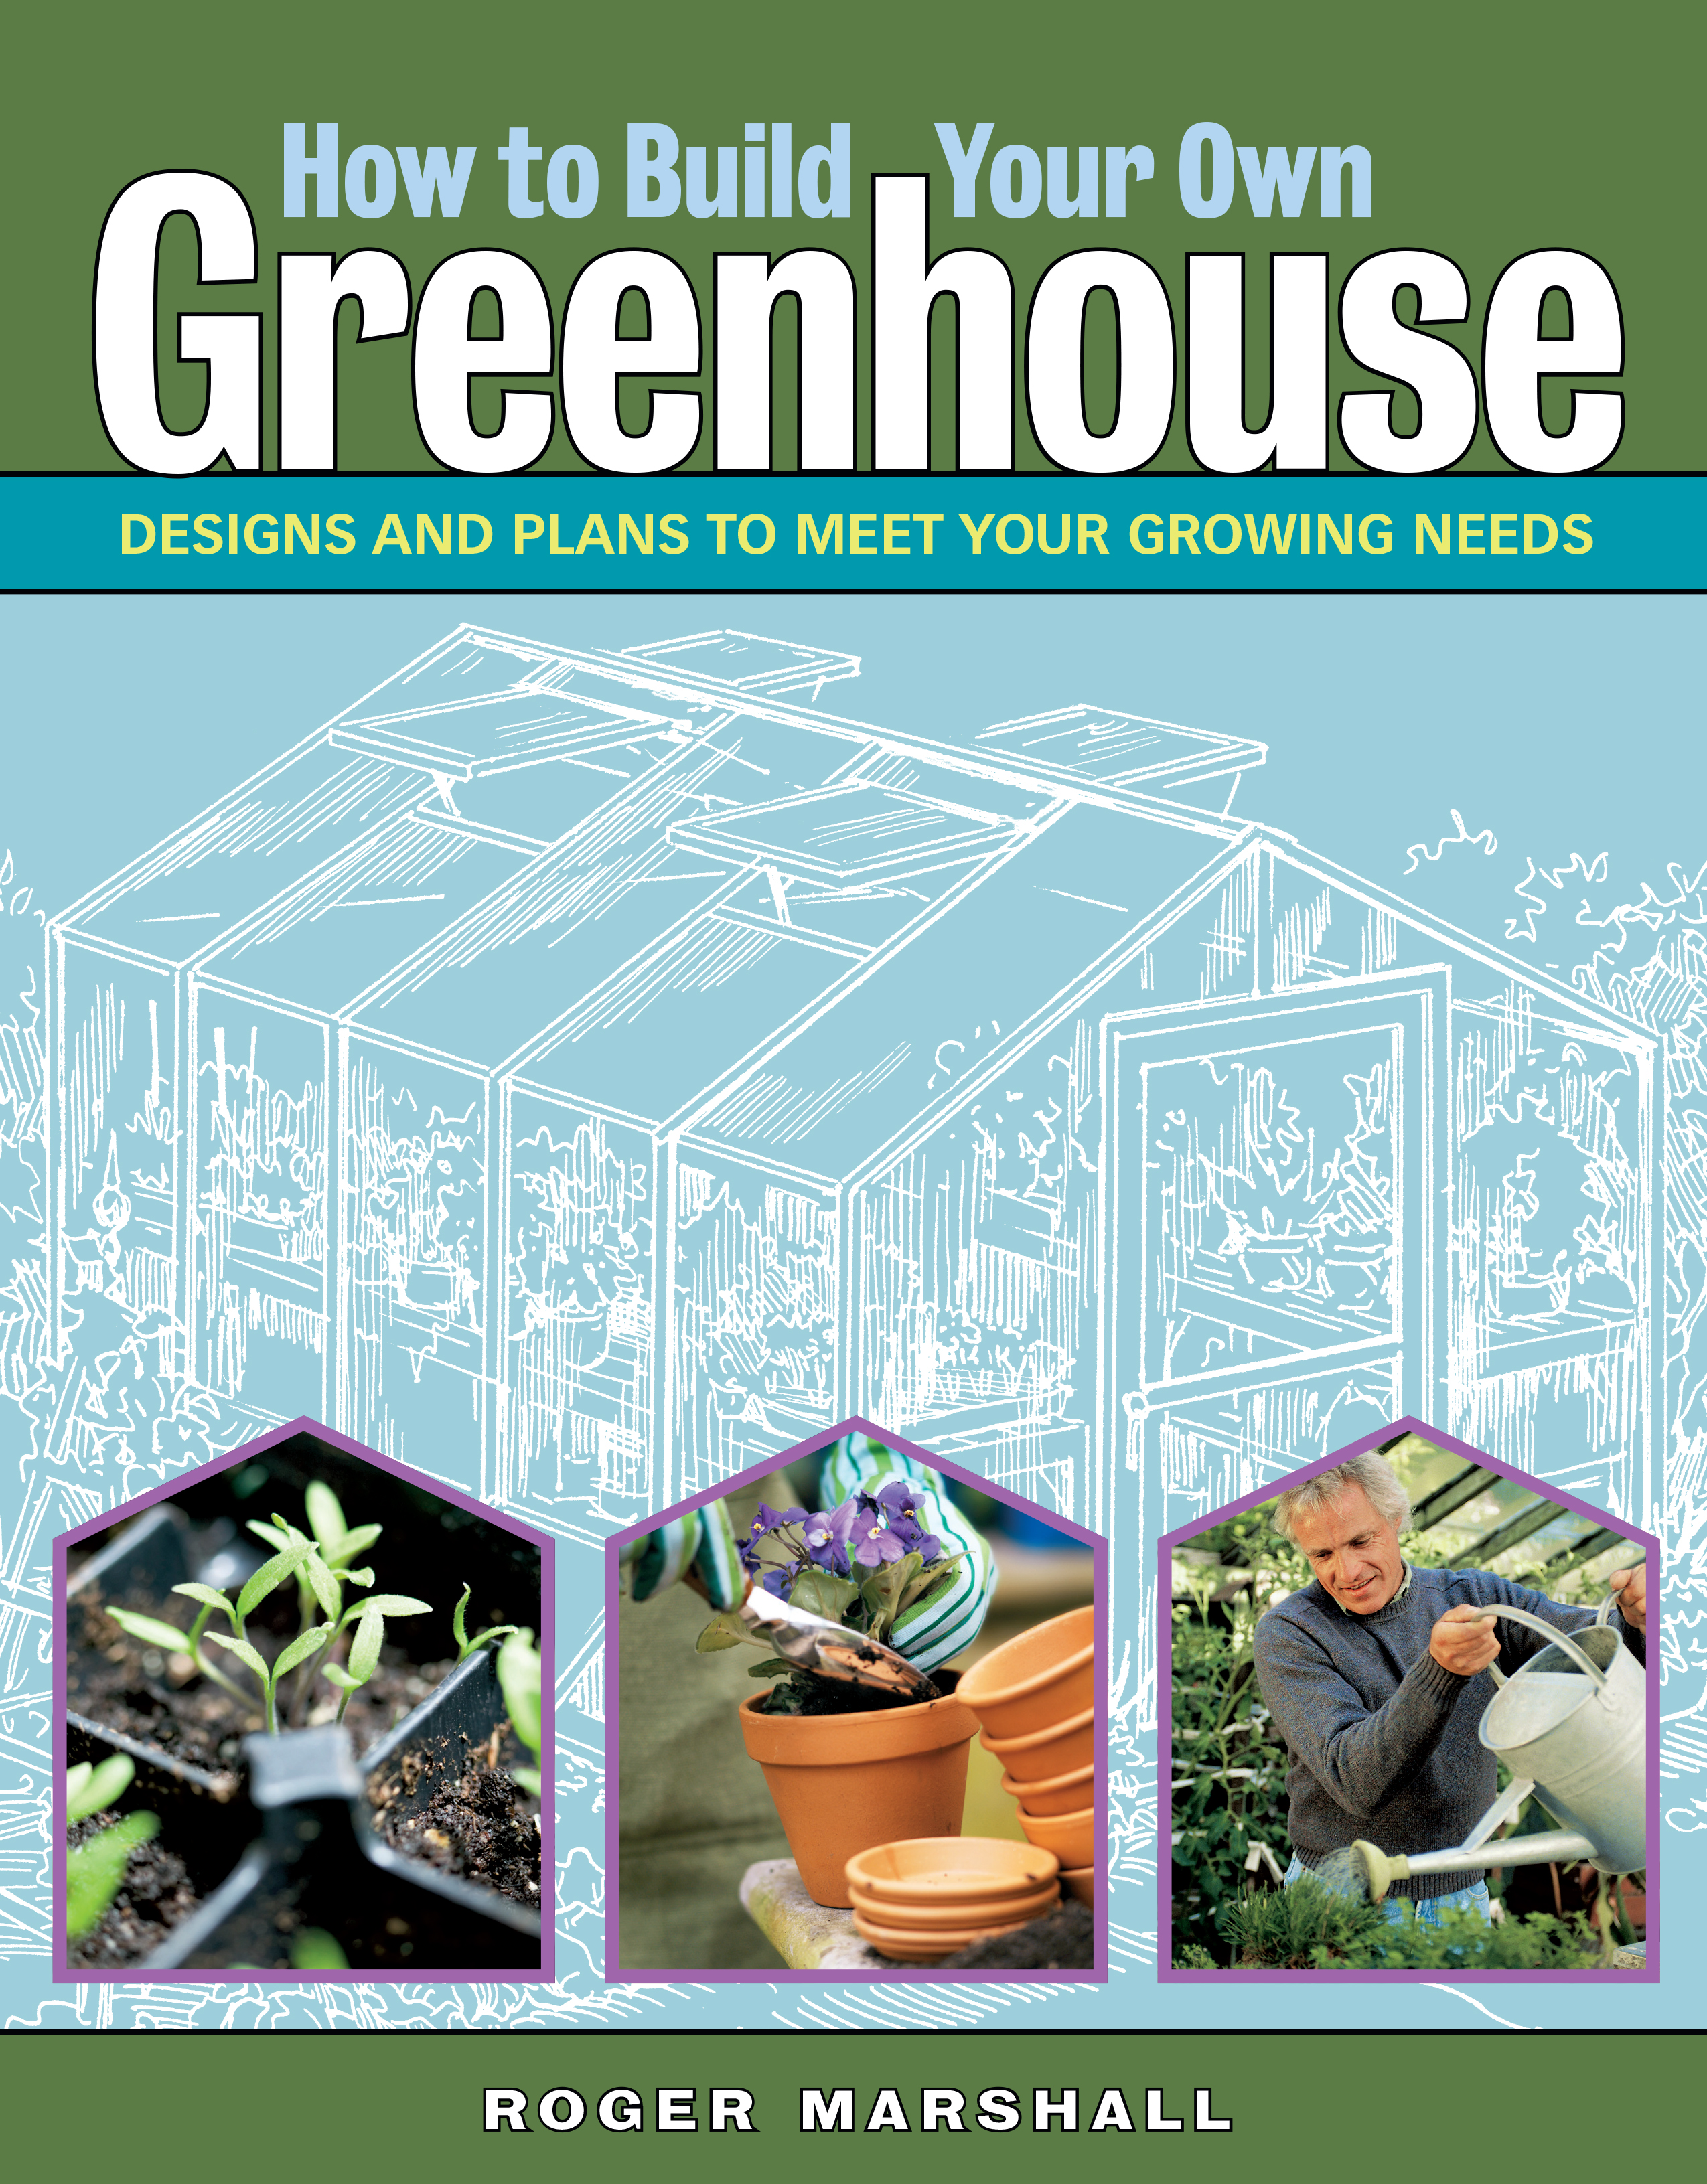 How to Build Your Own Greenhouse Designs and Plans to Meet Your Growing Needs - Roger Marshall